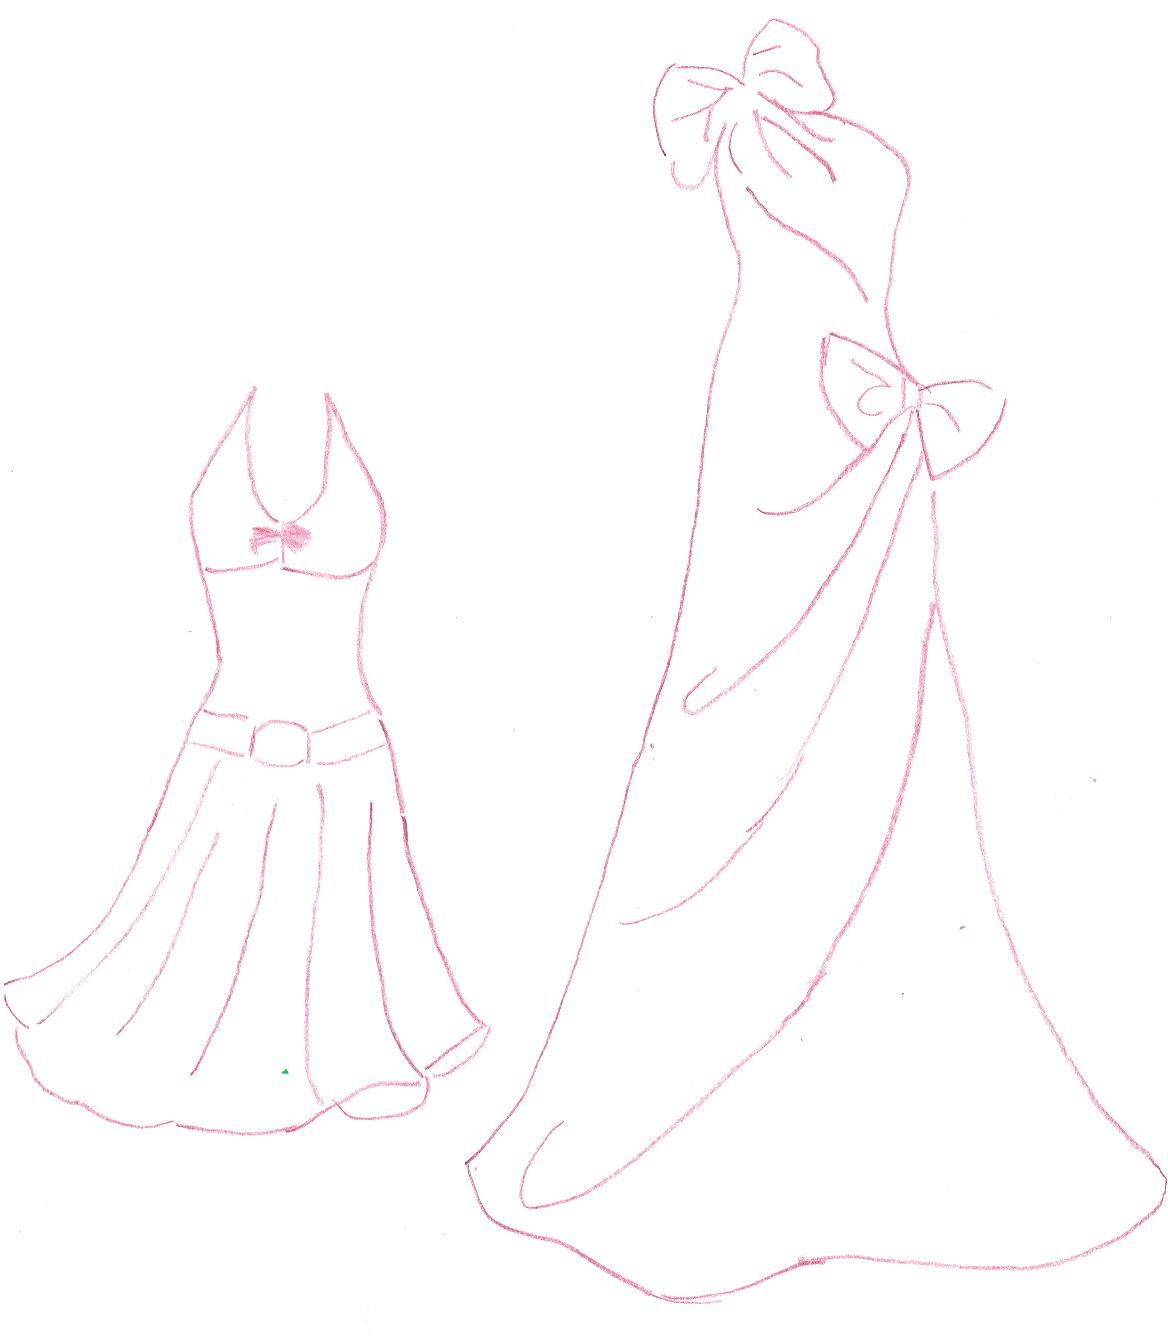 How to draw easy barbie dresses barbie drawing easy drawings pencil drawings barbie